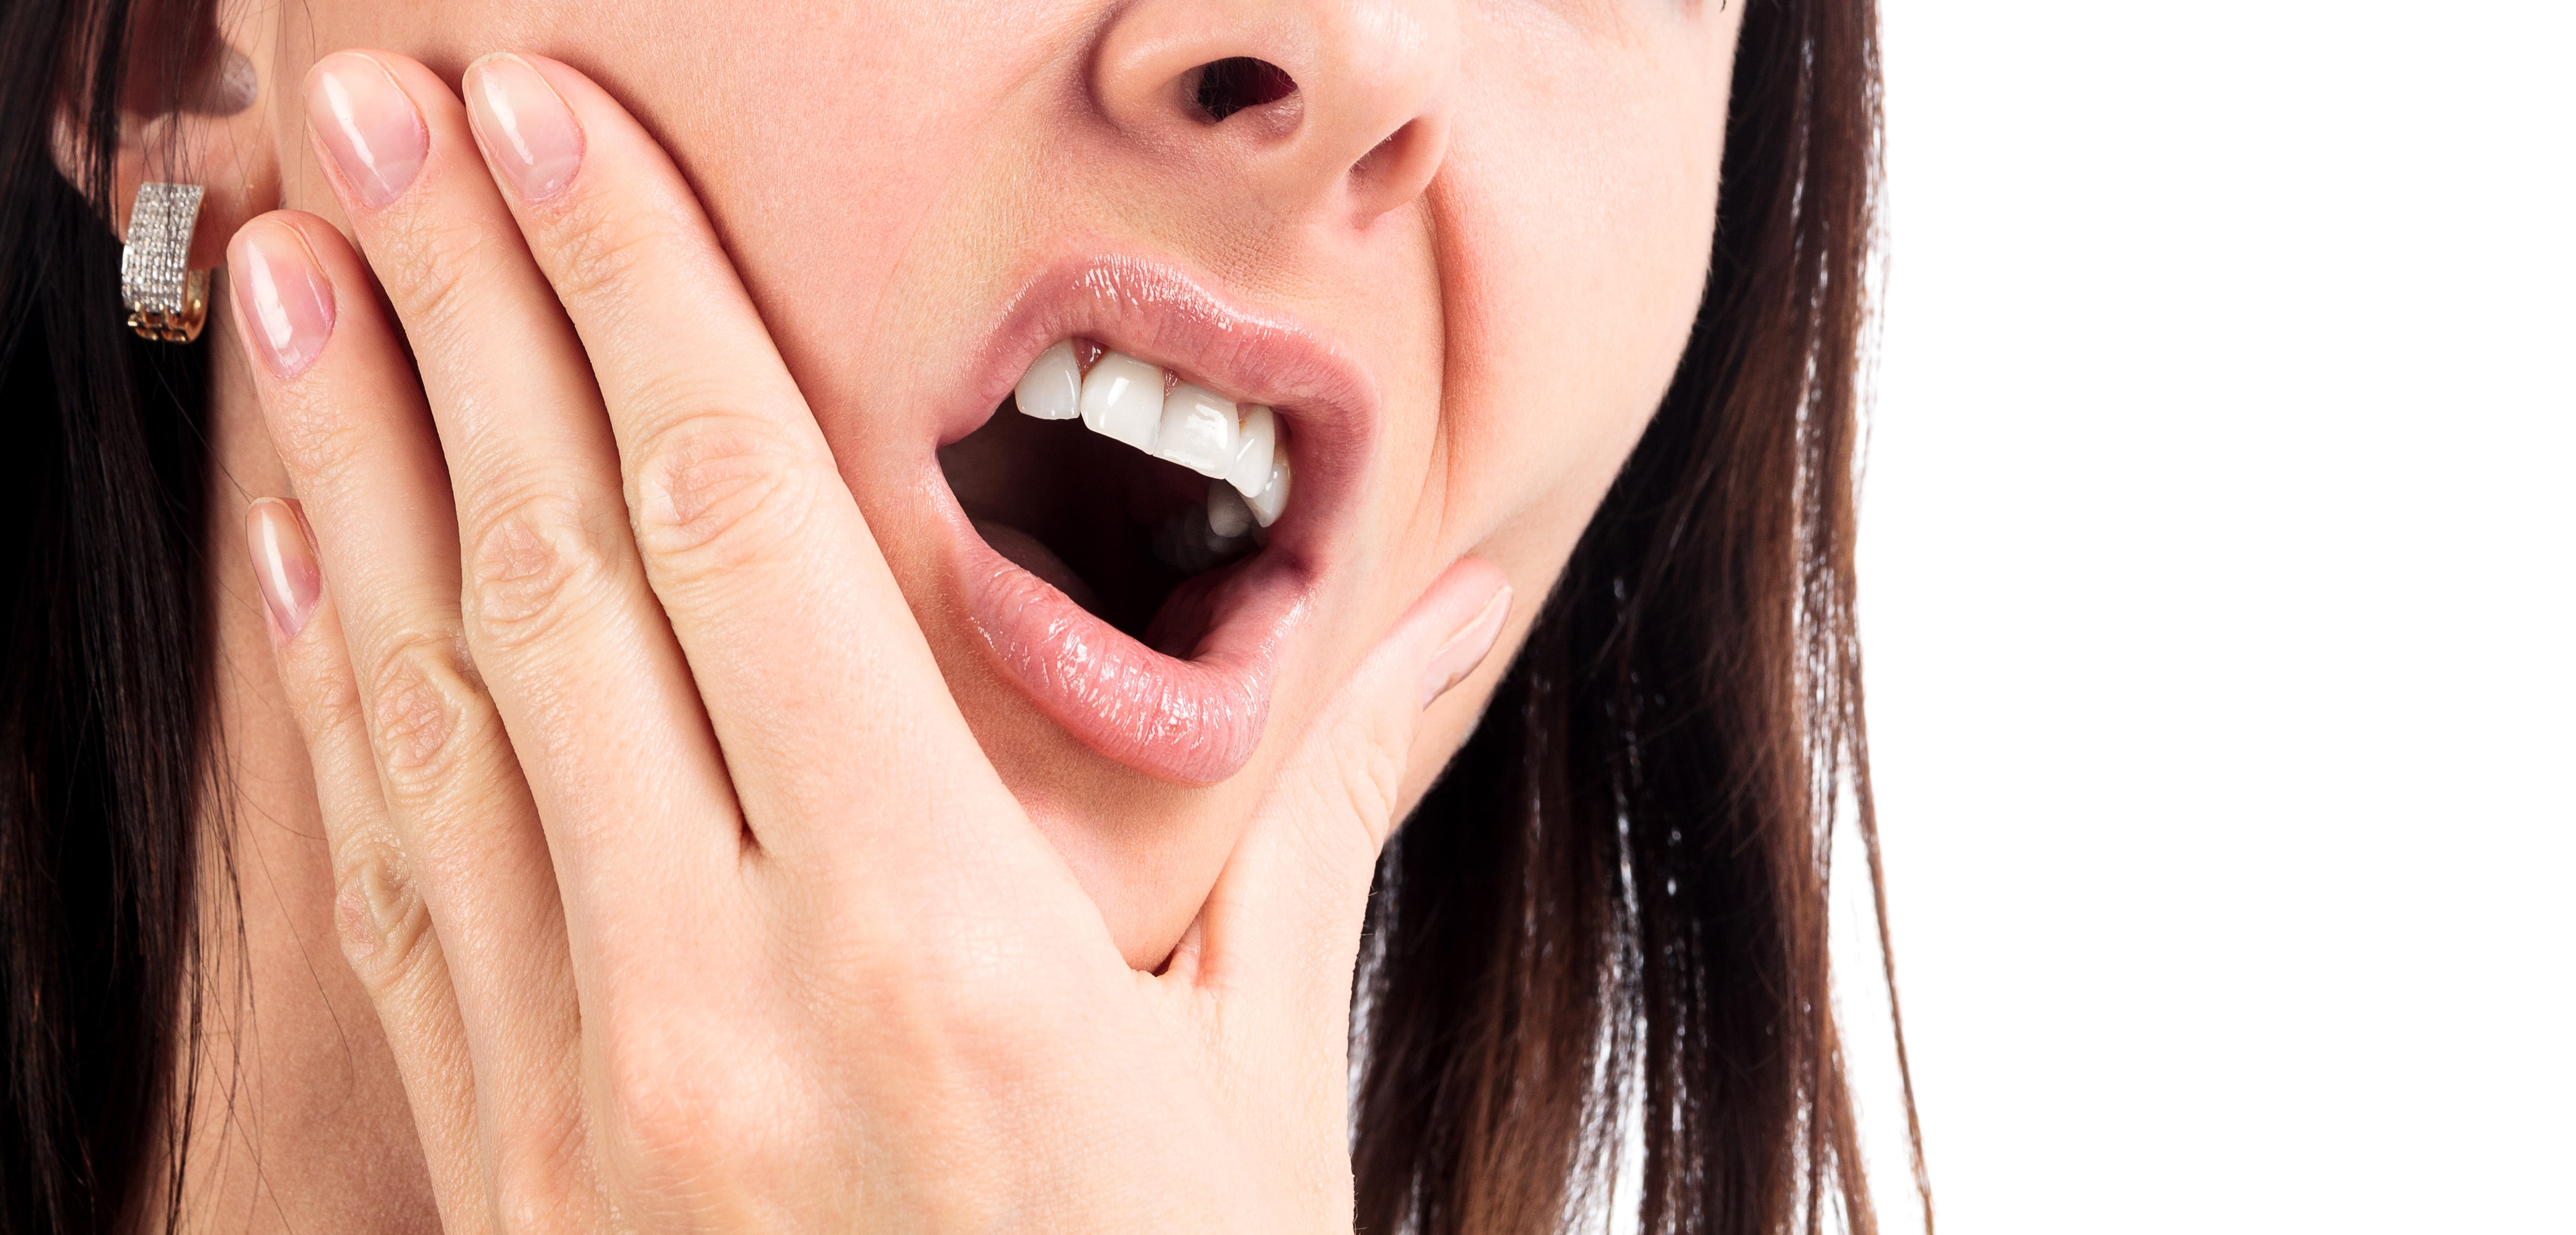 Tooth Abscess | Causes, Symptoms and Treatments